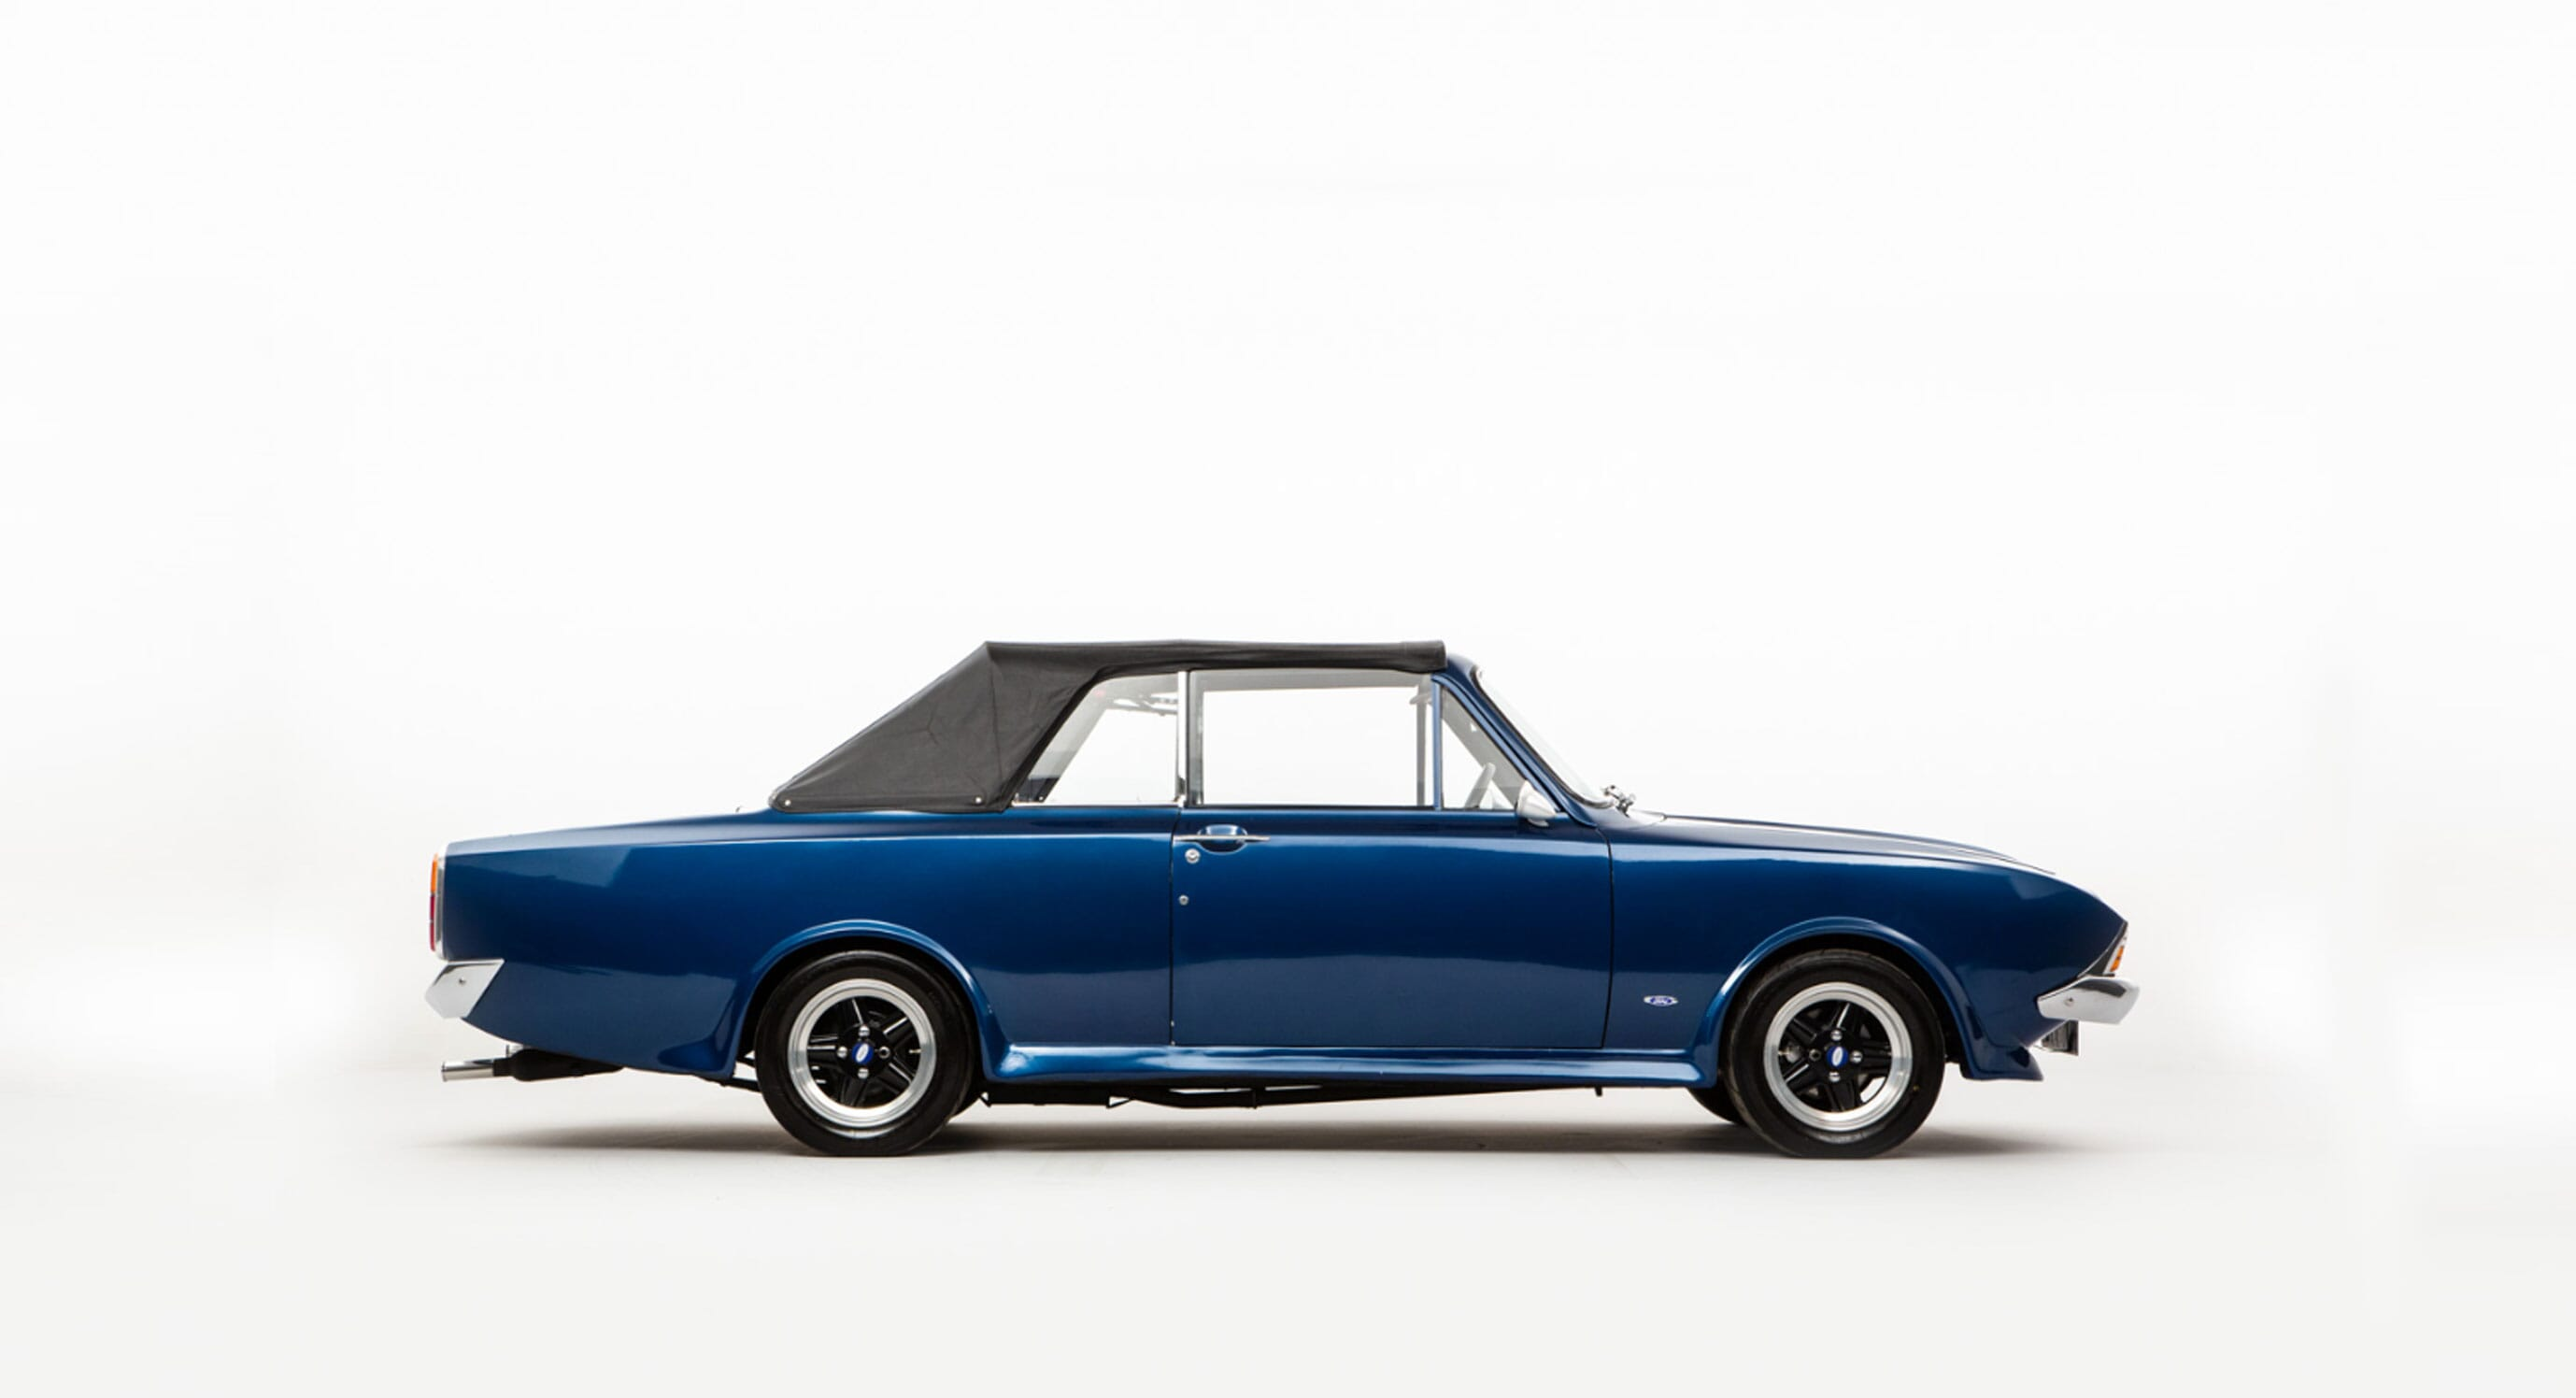 This 1967 Ford Corsair Crayford Is A Rare Find